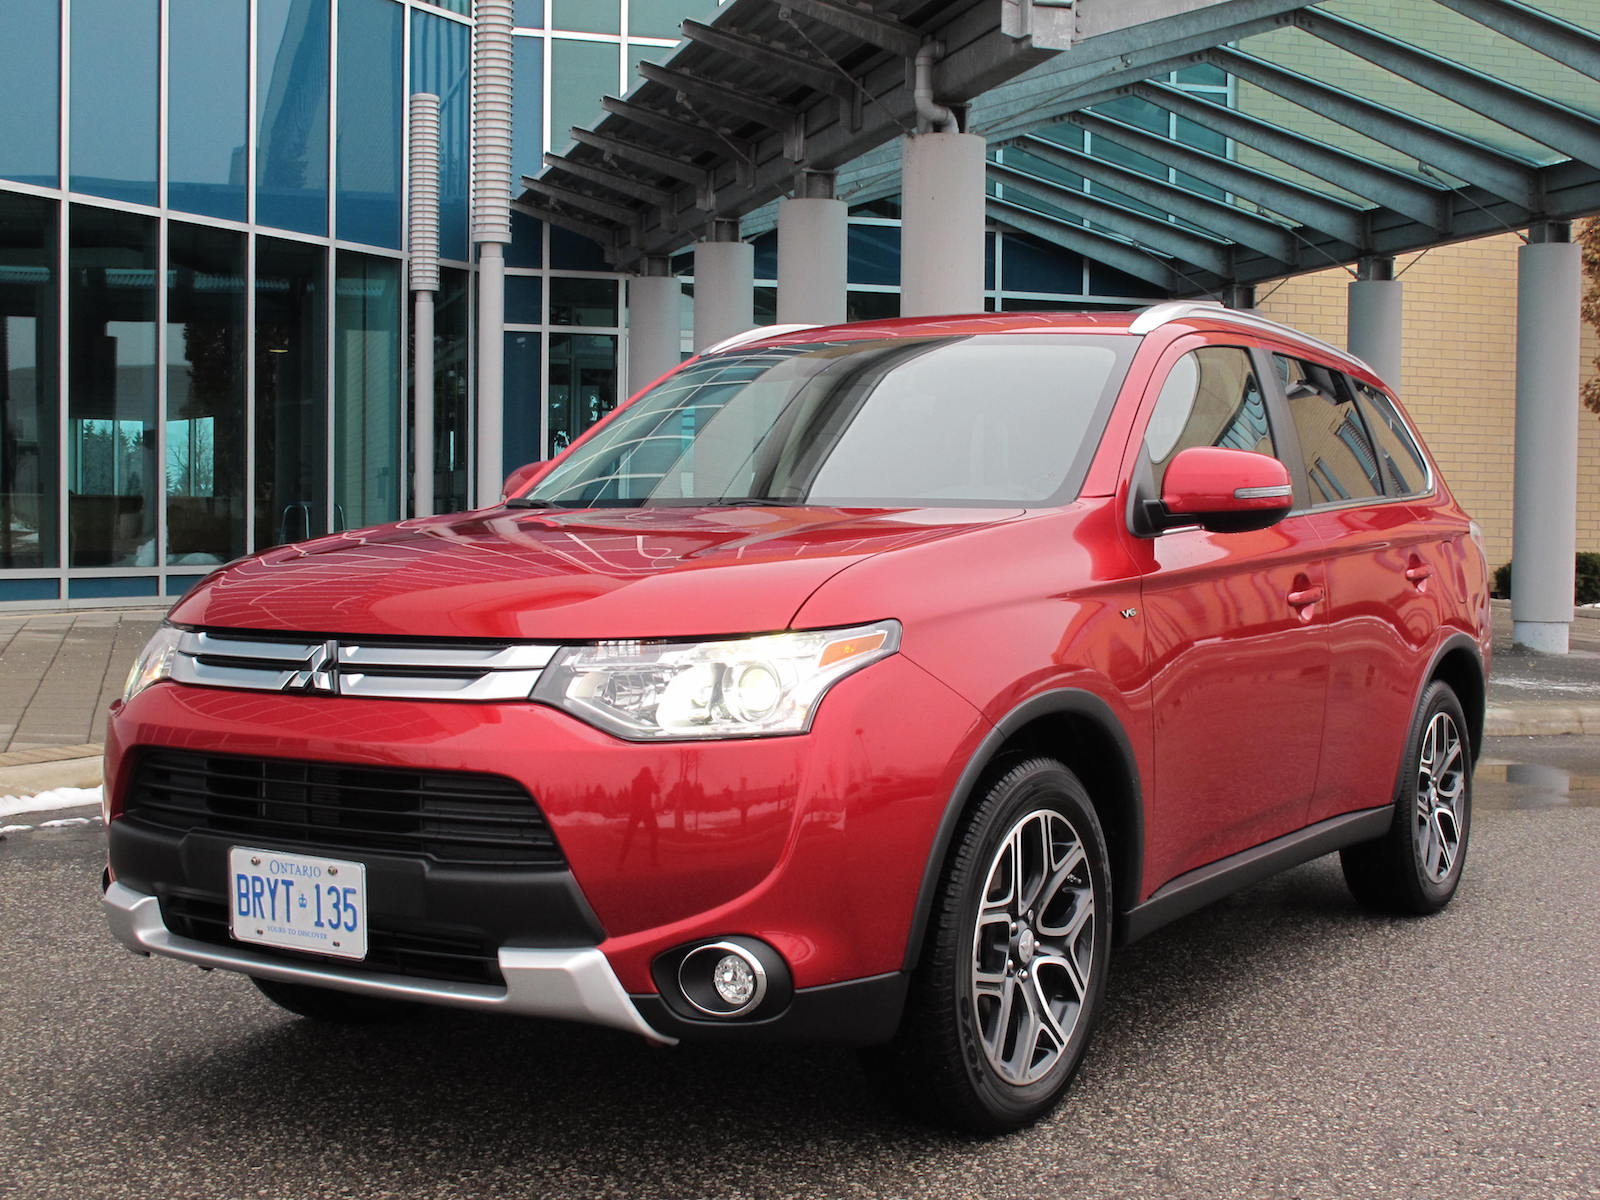 review 2015 mitsubishi outlander gt s awc canadian auto review. Black Bedroom Furniture Sets. Home Design Ideas